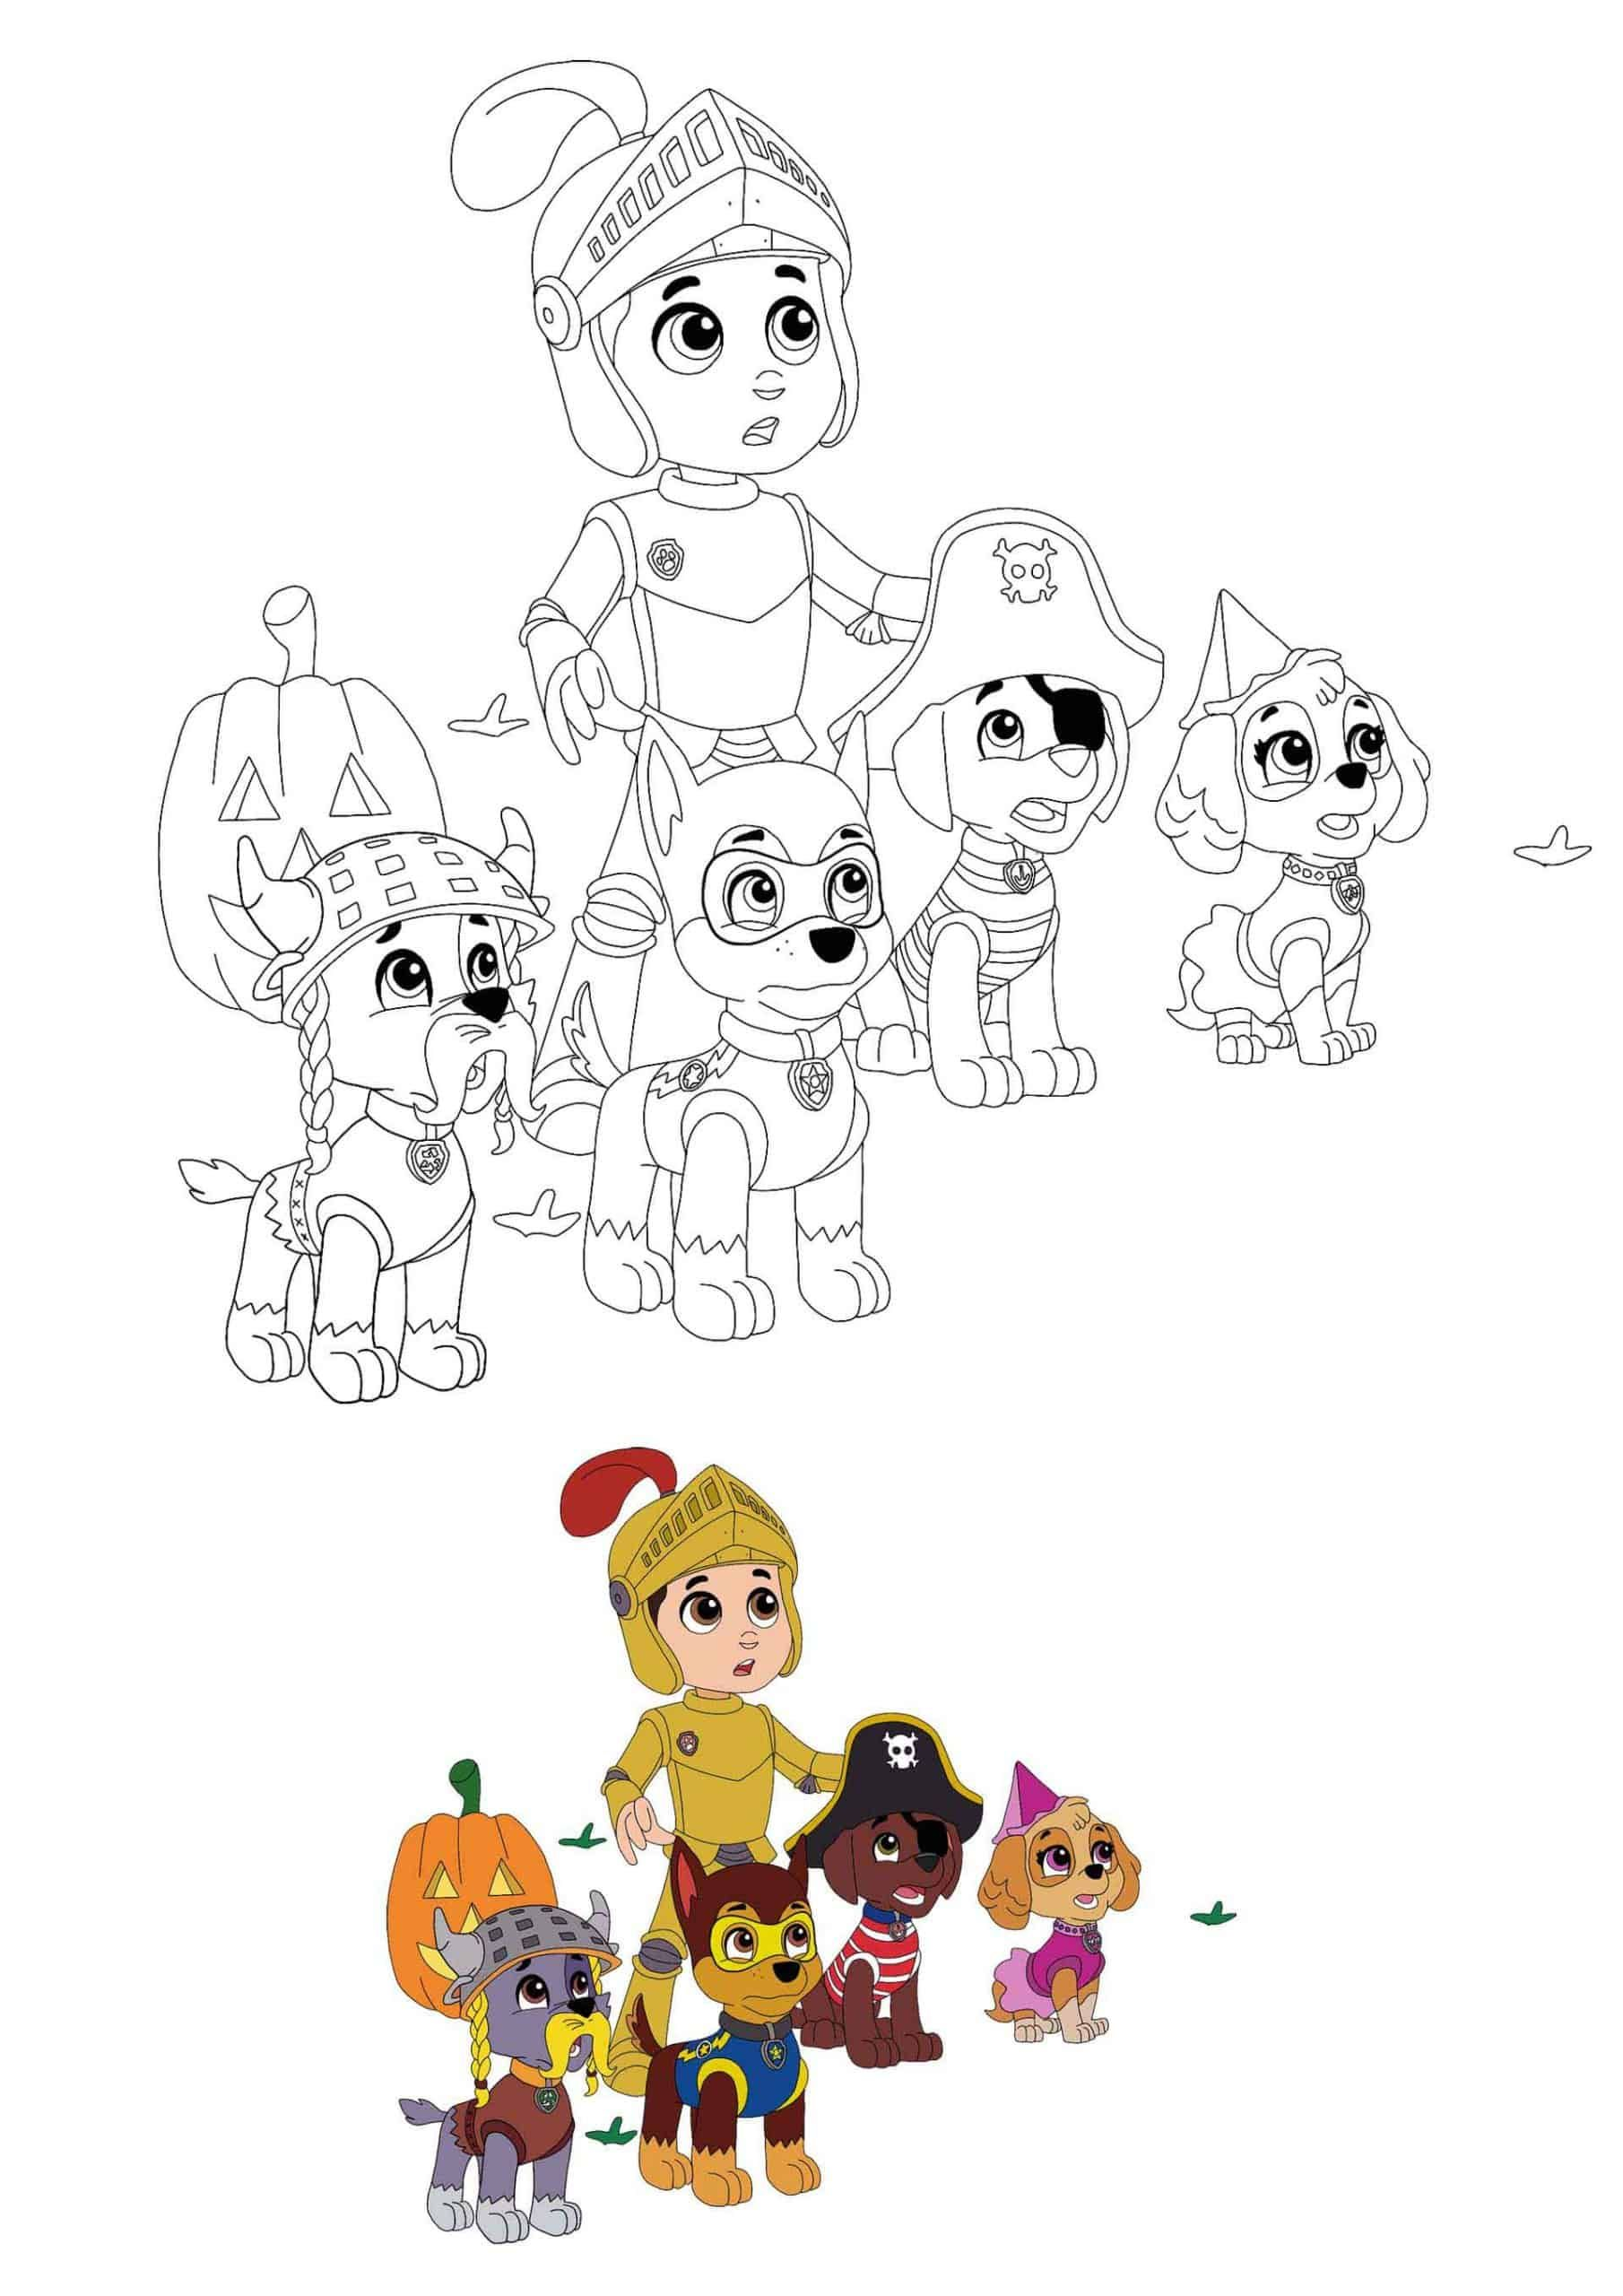 Paw Patrol Halloween Coloring Pages in 2020 | Halloween ...